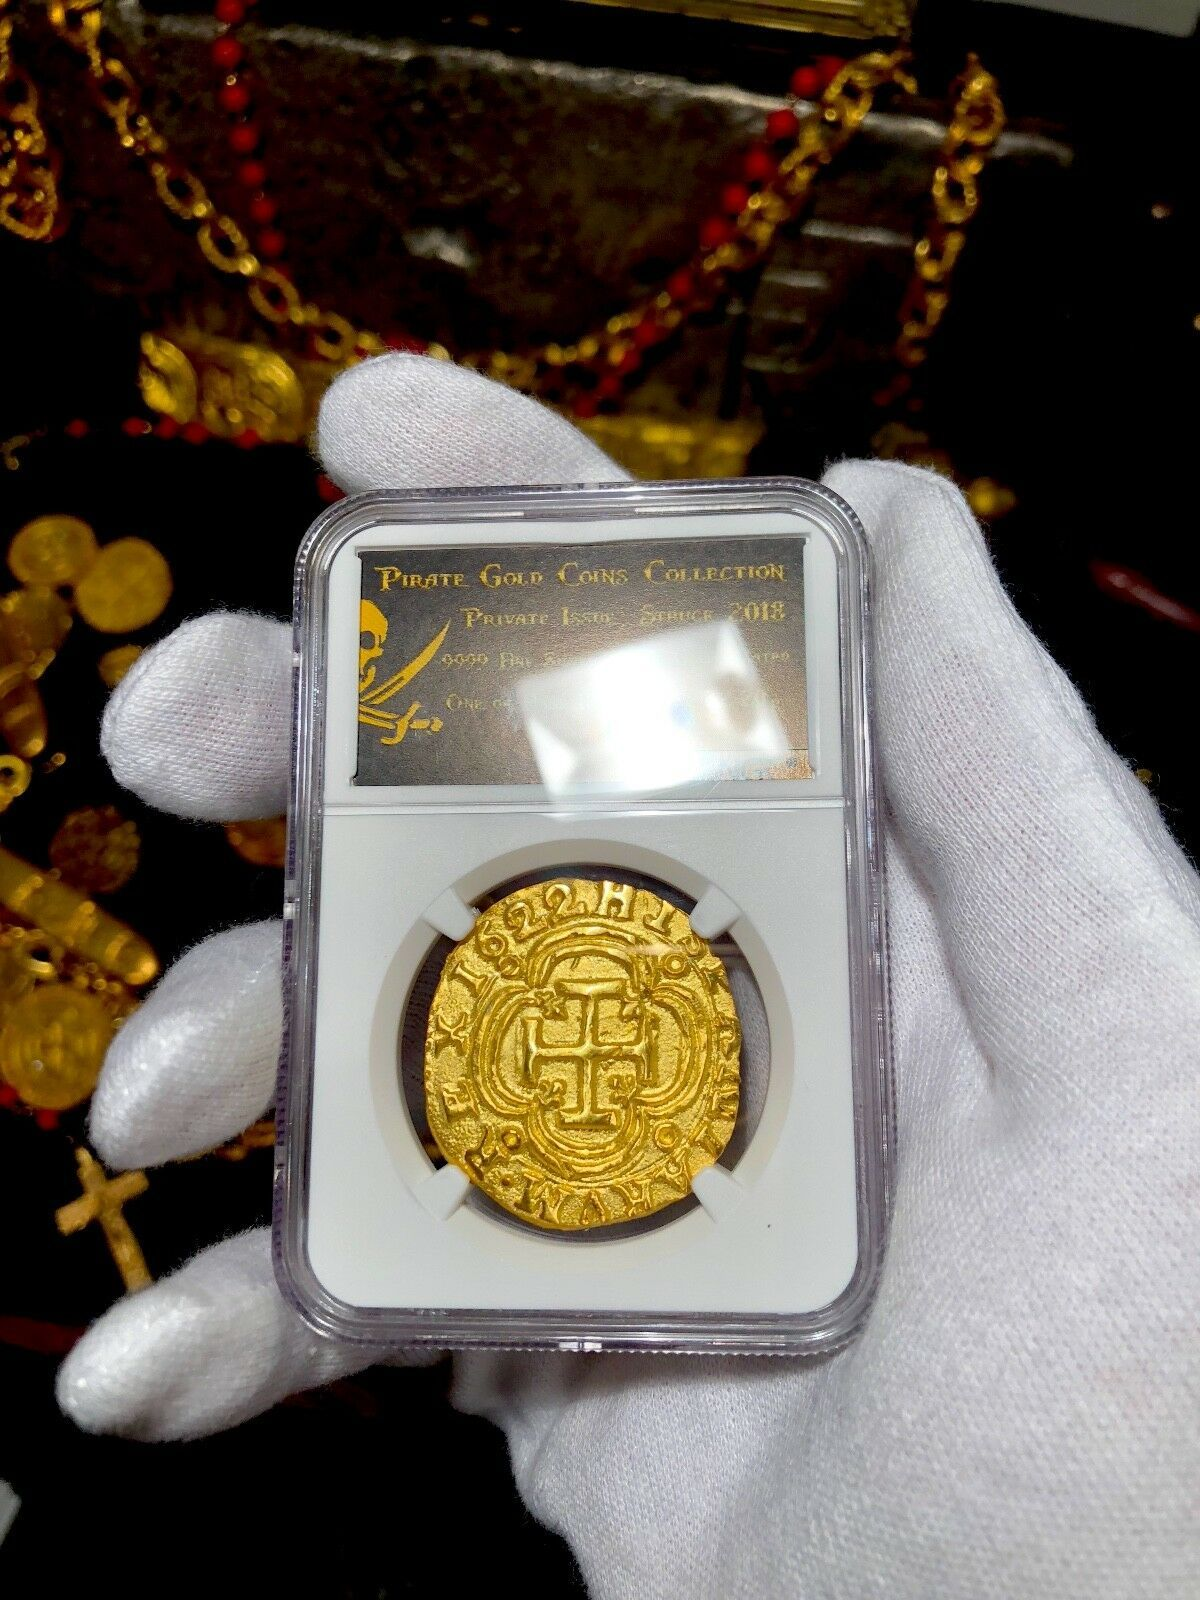 COLOMBIA 1622 REPO 8 ESCUDOS NGC GOLD PLATED ATOCHA PIRATE TREASURE COIN JEWELRY